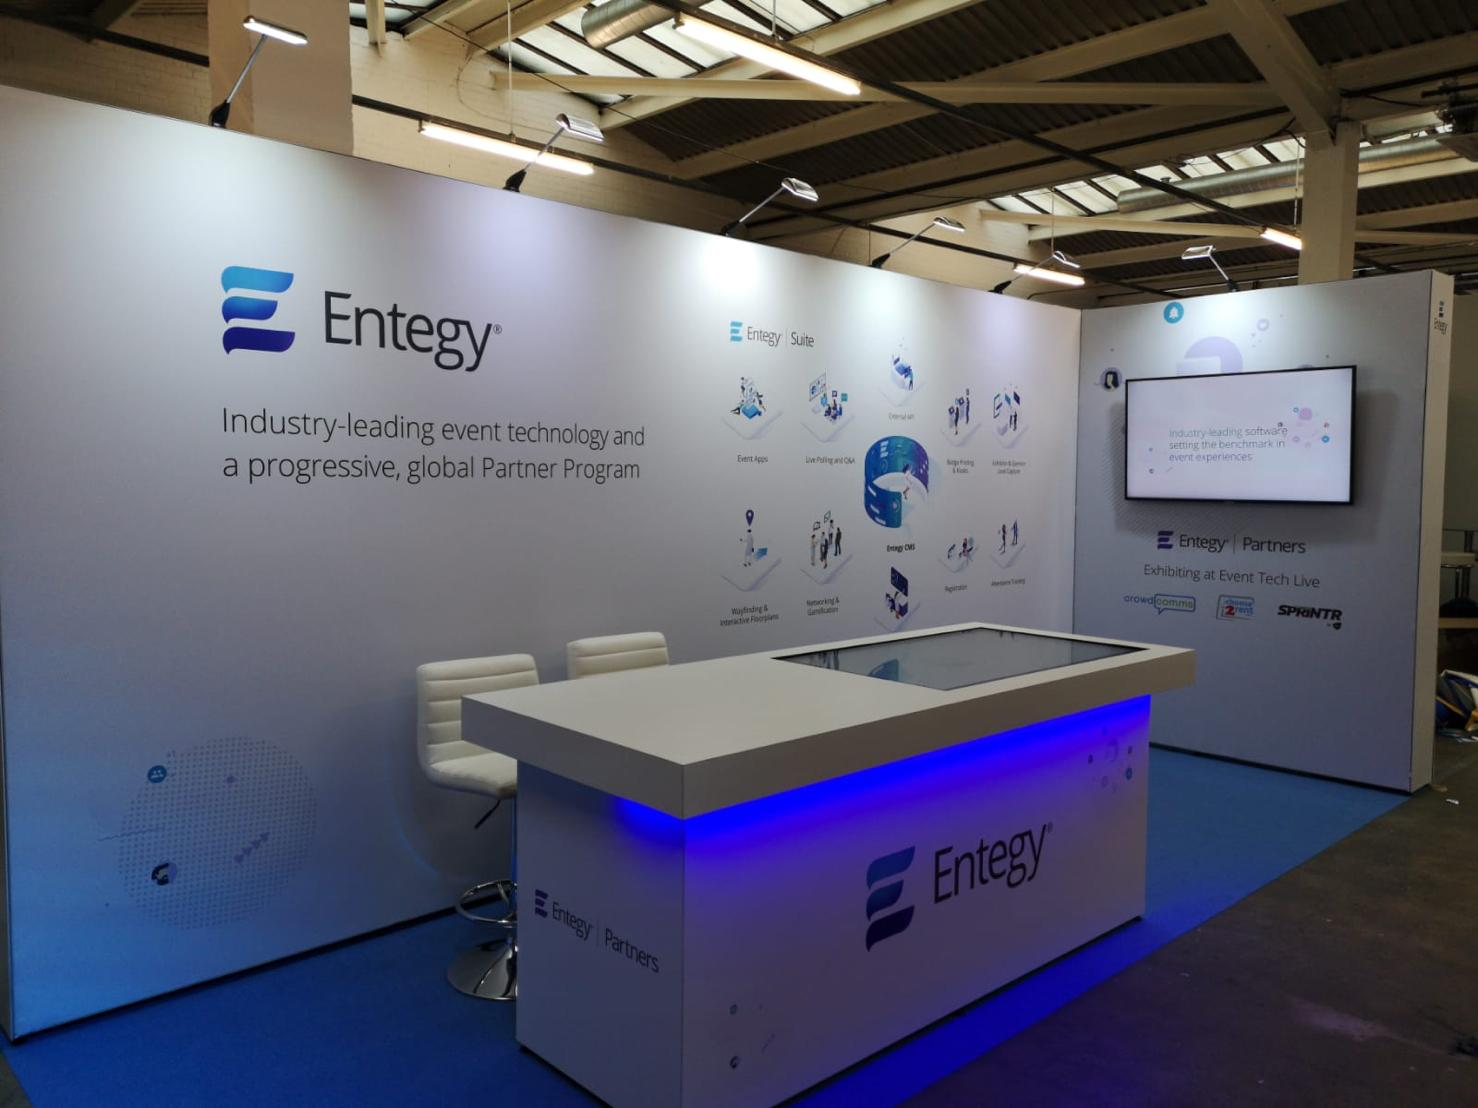 Entegy booth at Event Tech Live